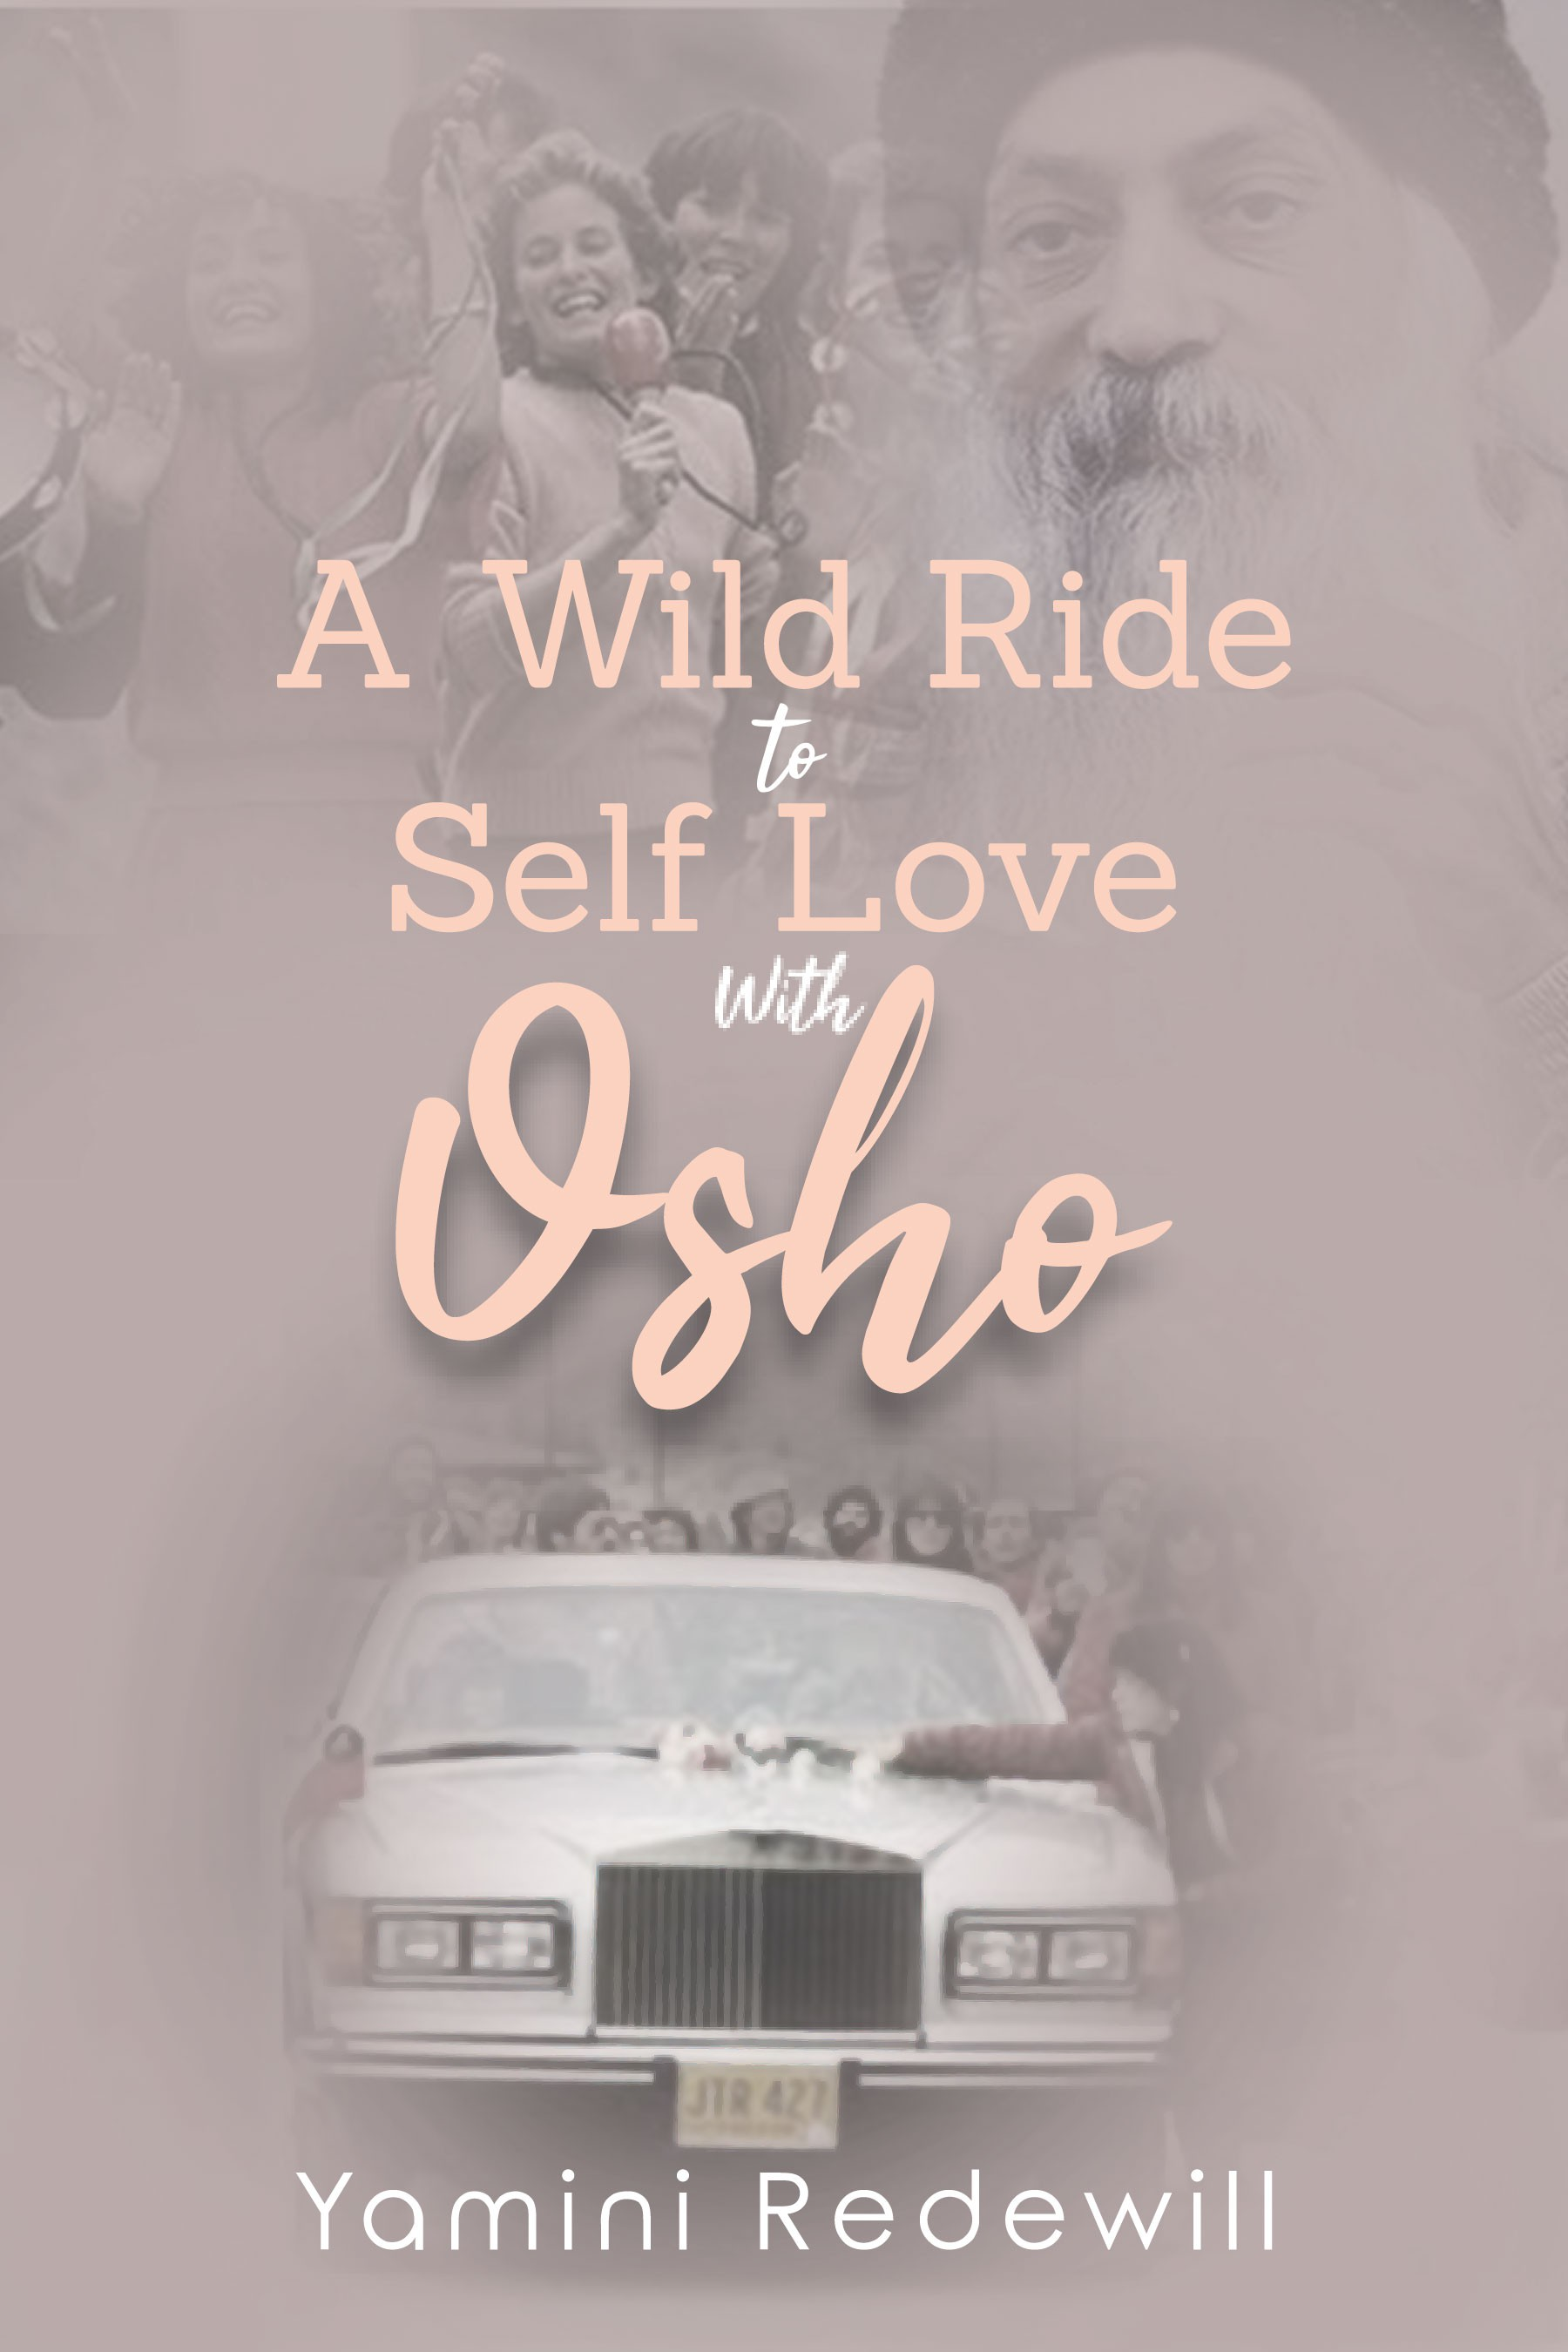 """Design a bookcover for """"A Wild Ride to Self Love with Osho"""""""